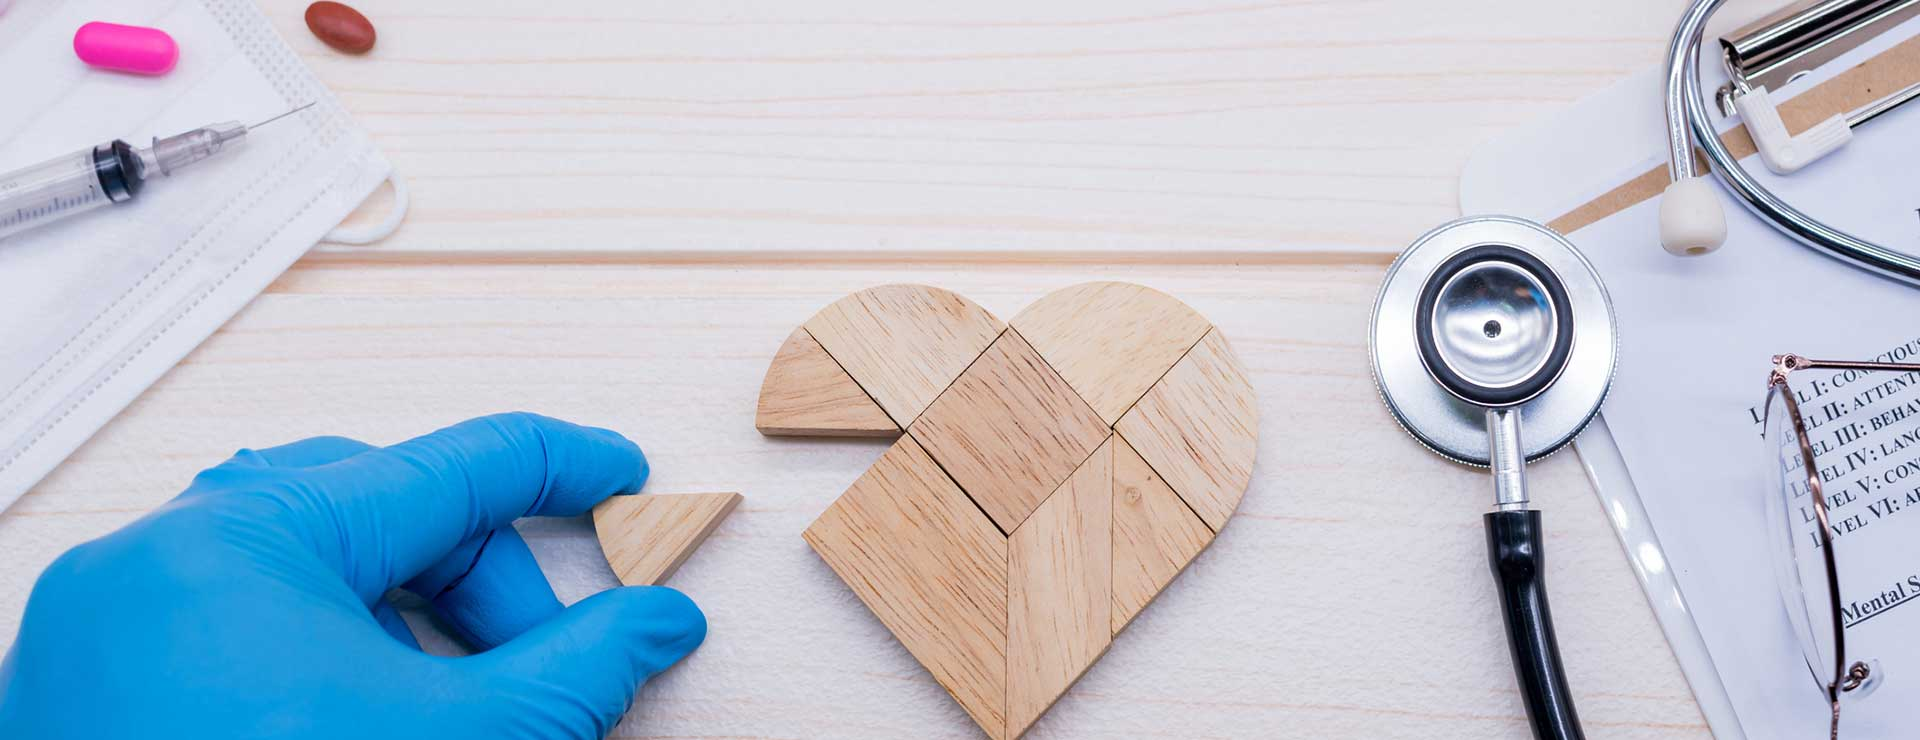 A doctor putting together a wooden heart-shaped puzzle